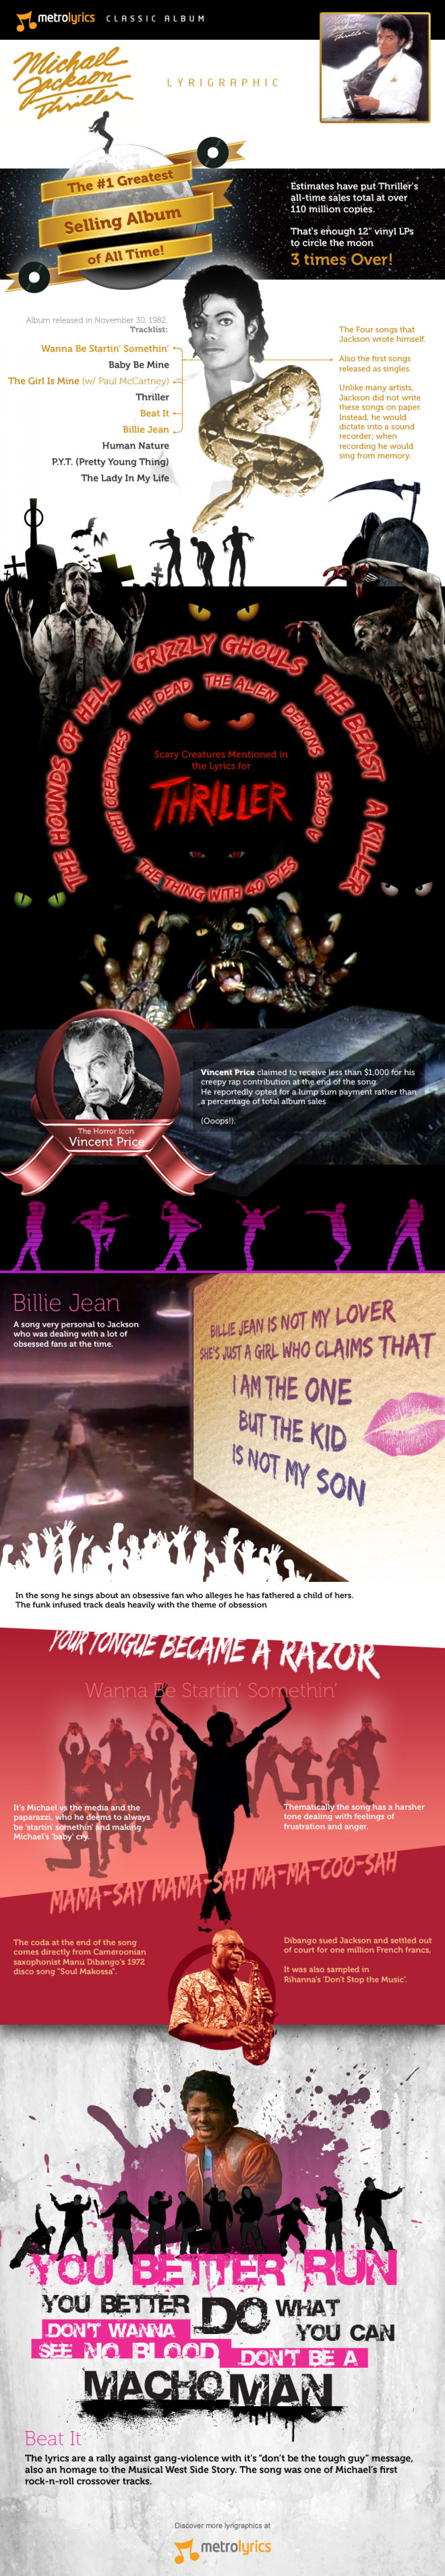 Michael Jackson's Classic Thriller Album Lyrics in Visual Form Infographic